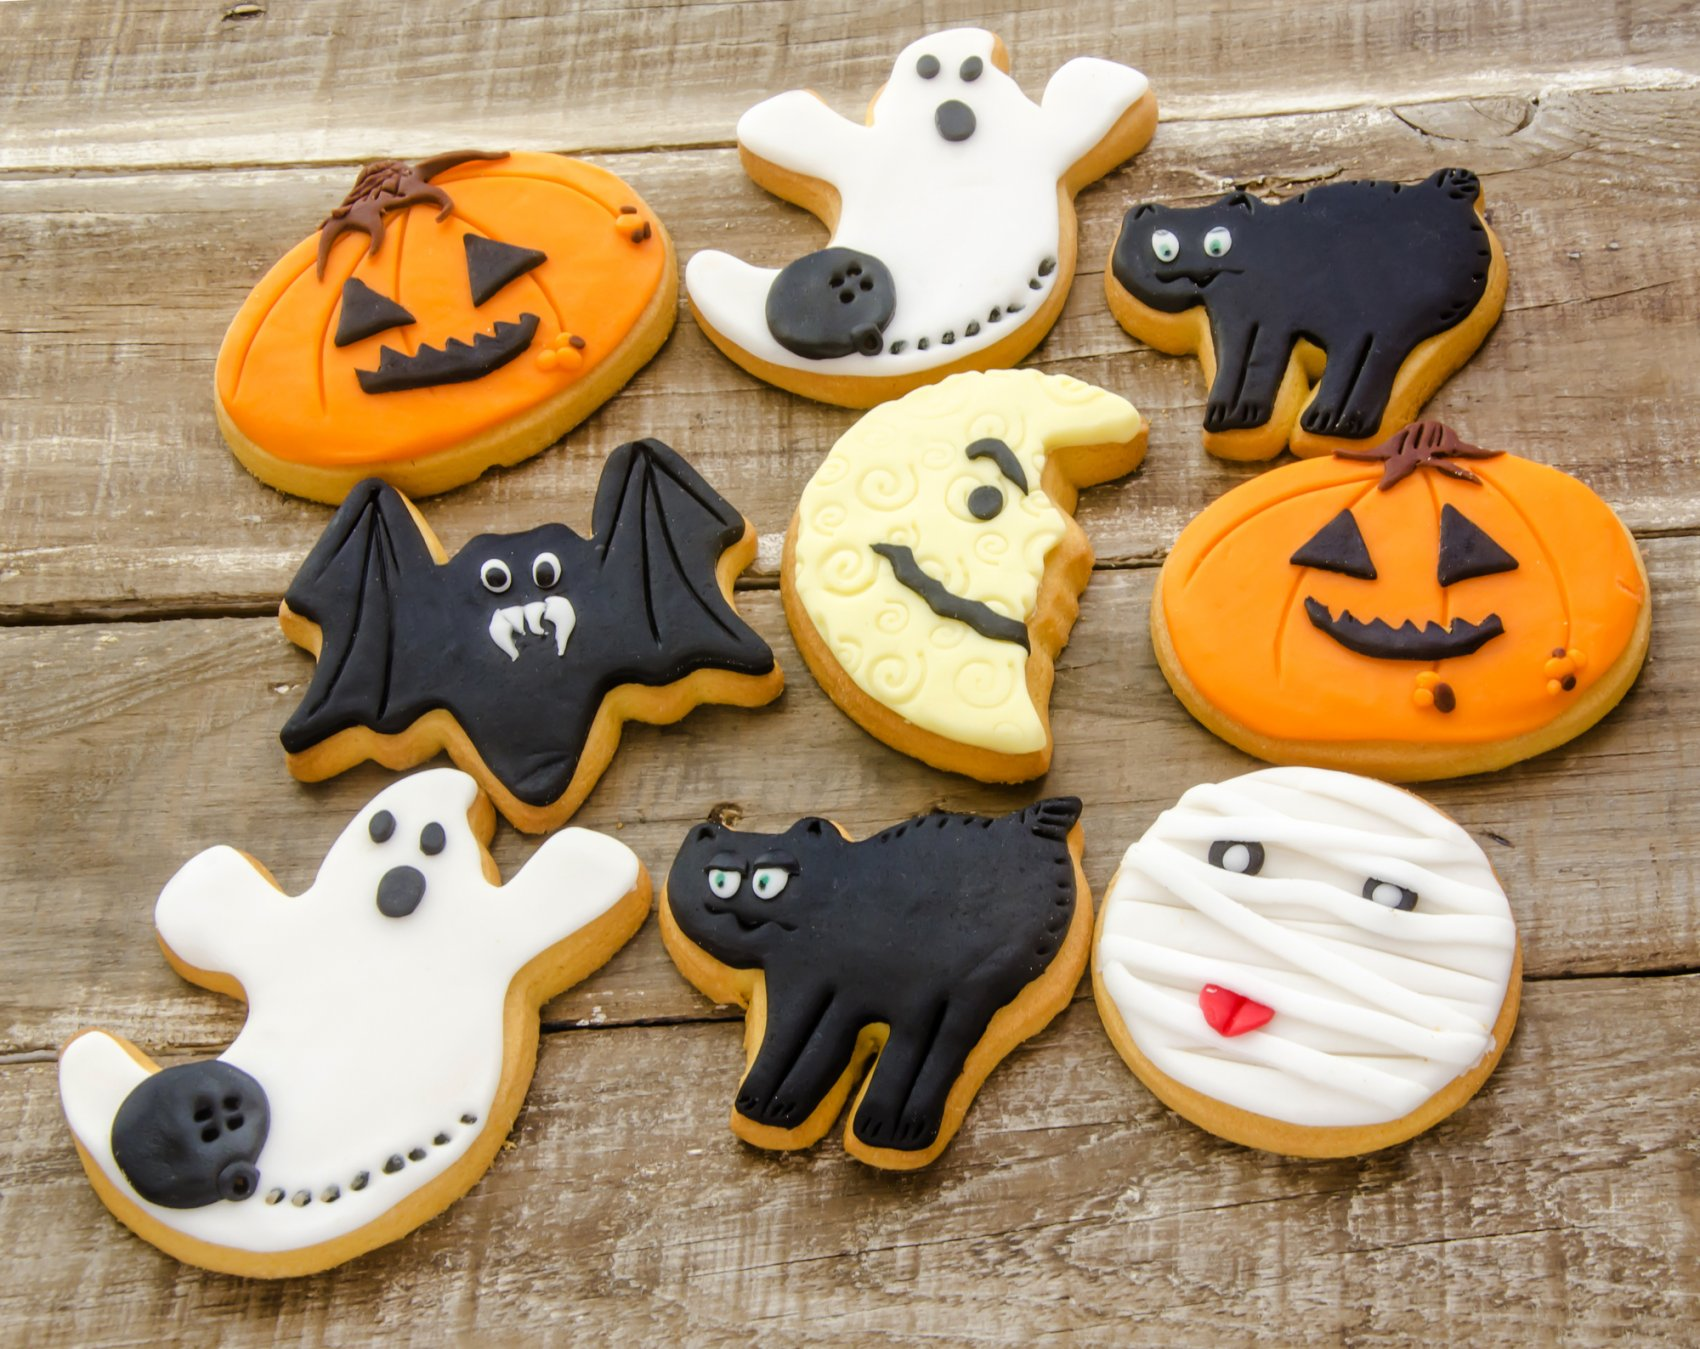 Halloween Frosted Sugar Cookies Recipe - Canny Costumes